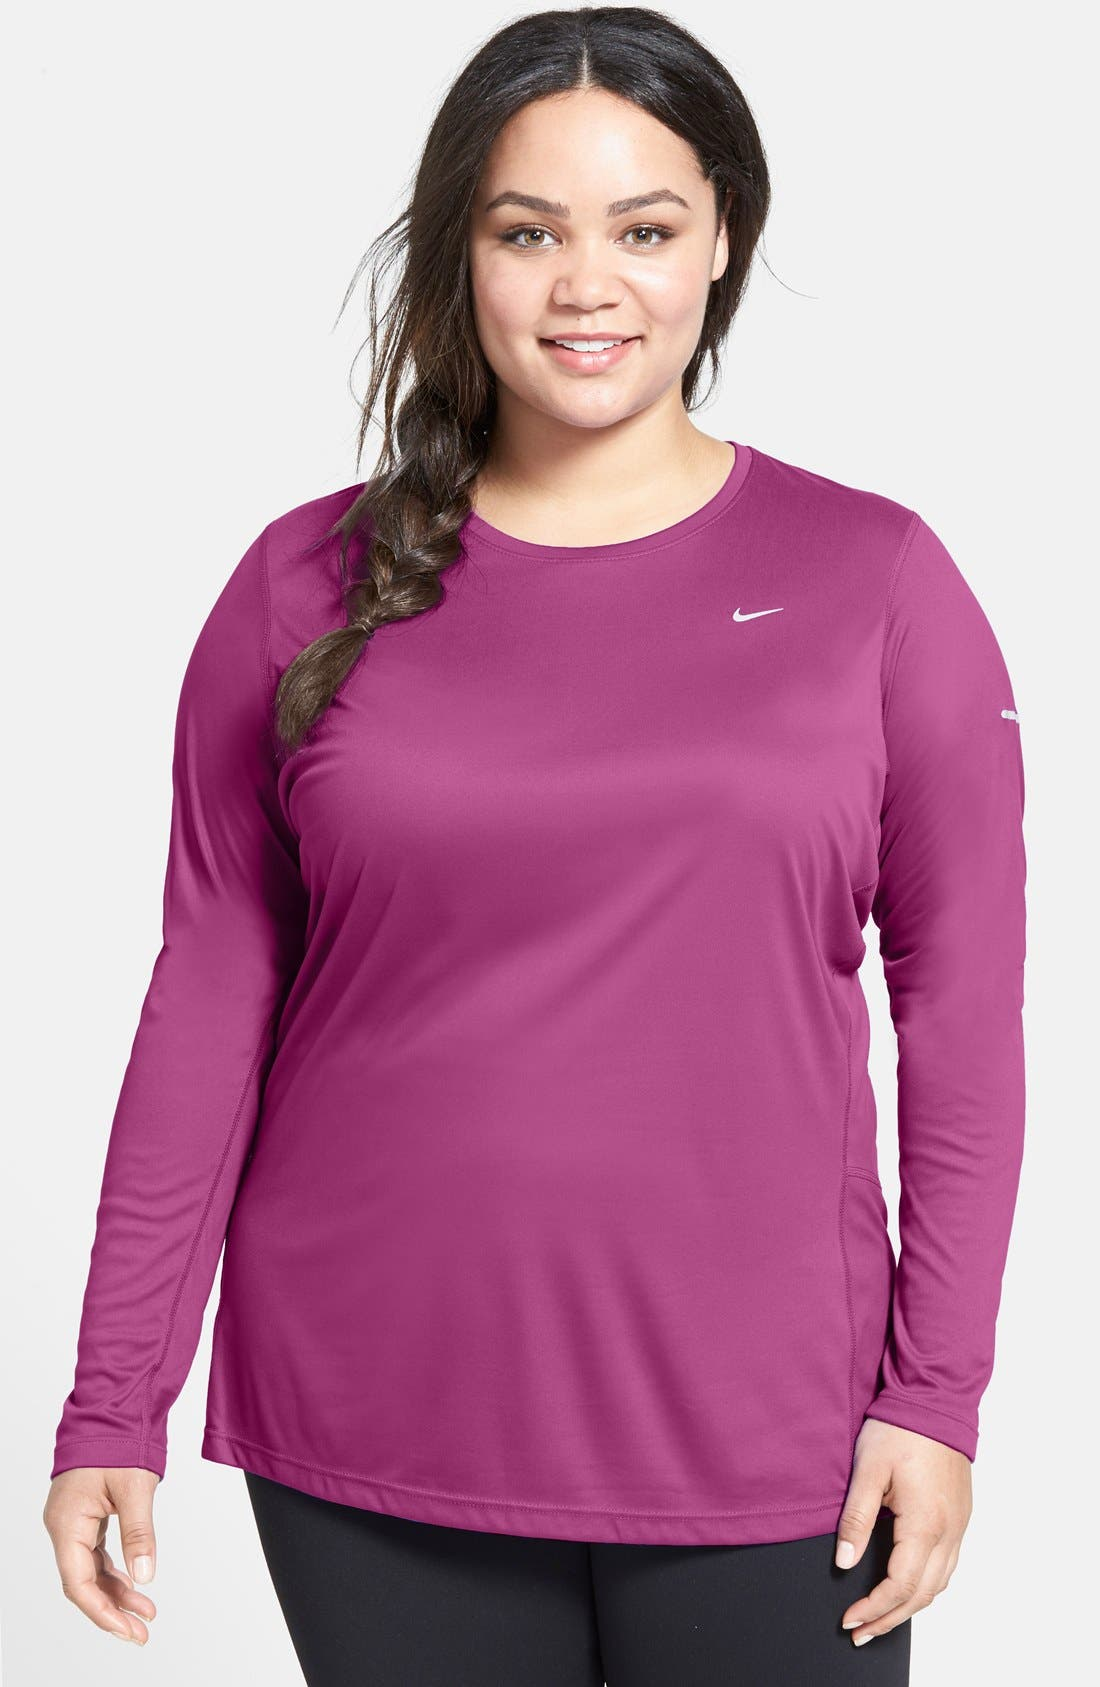 Alternate Image 1 Selected - Nike 'Miler' Long Sleeve Dri-FIT Tee (Plus Size)